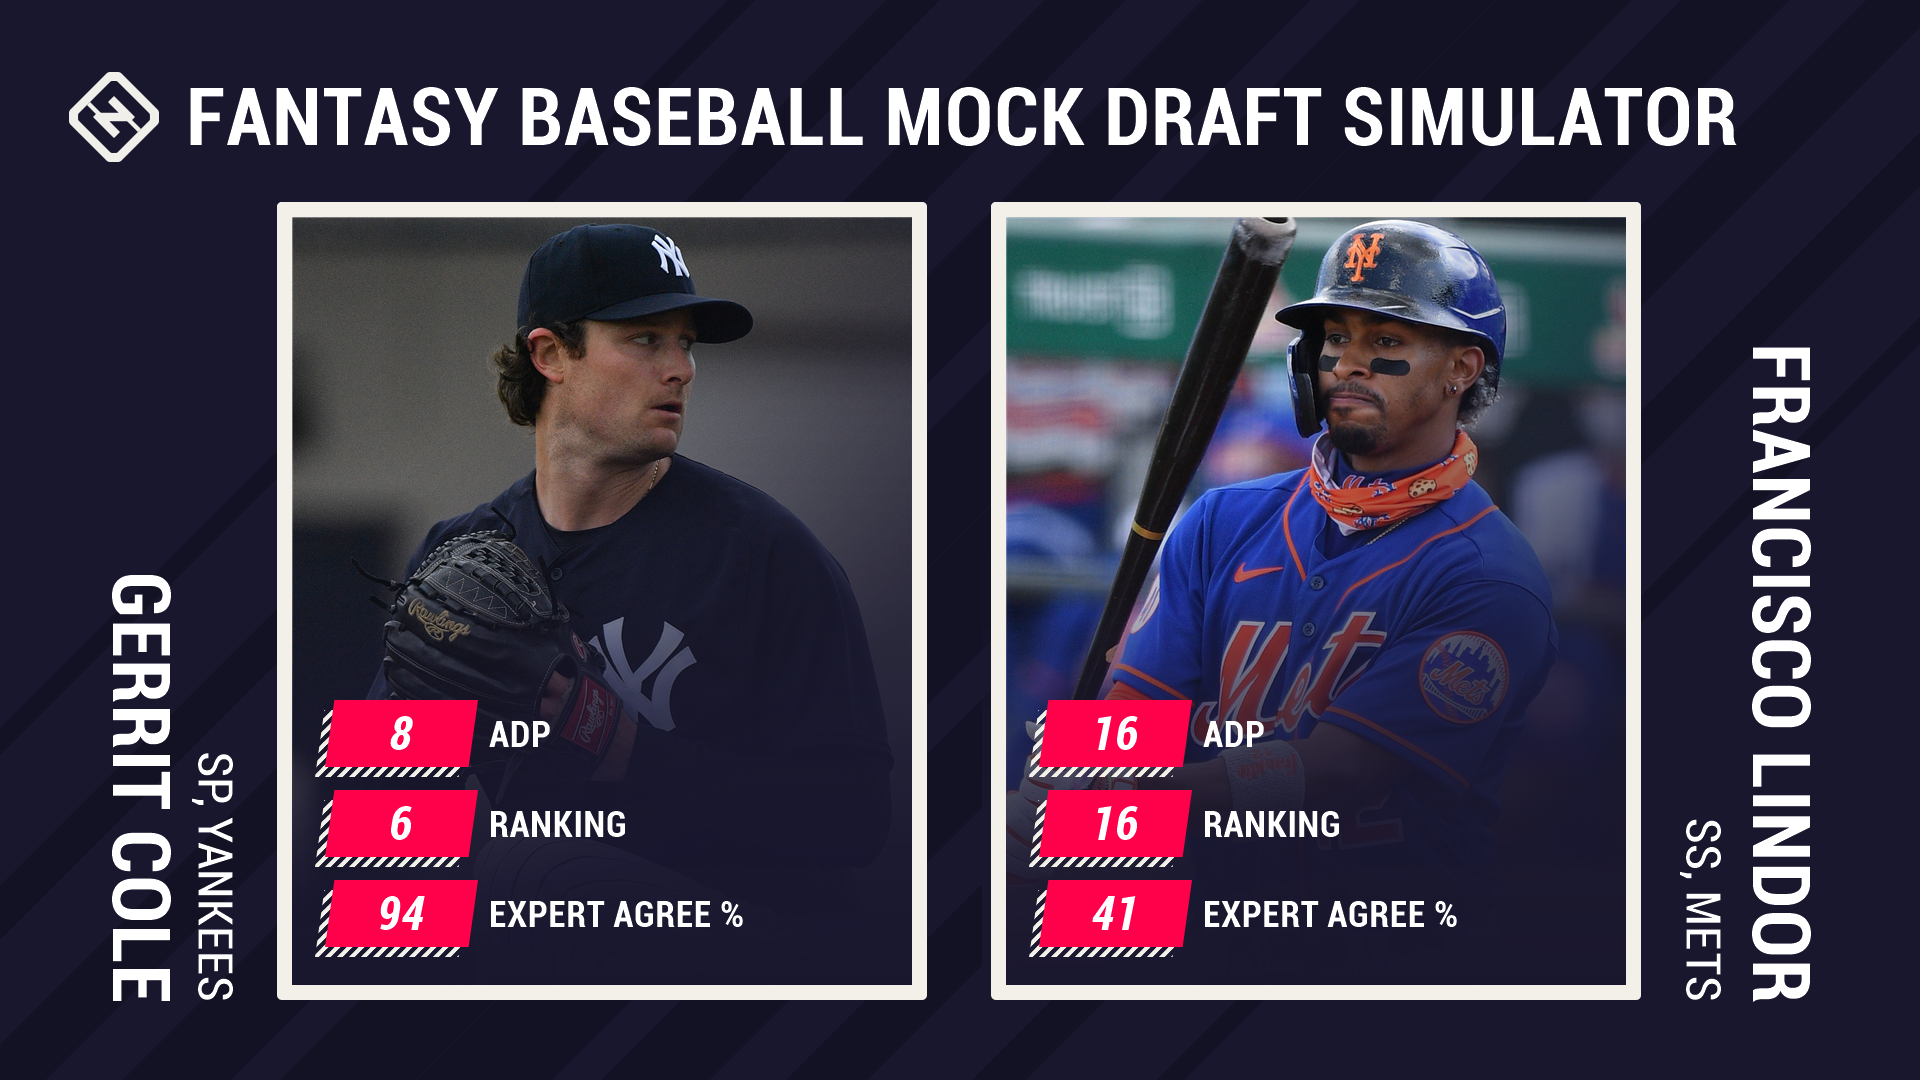 2021 Fantasy Baseball Mock Draft Simulator: Practice your draft strategy with the help of expert rankings, ADPs